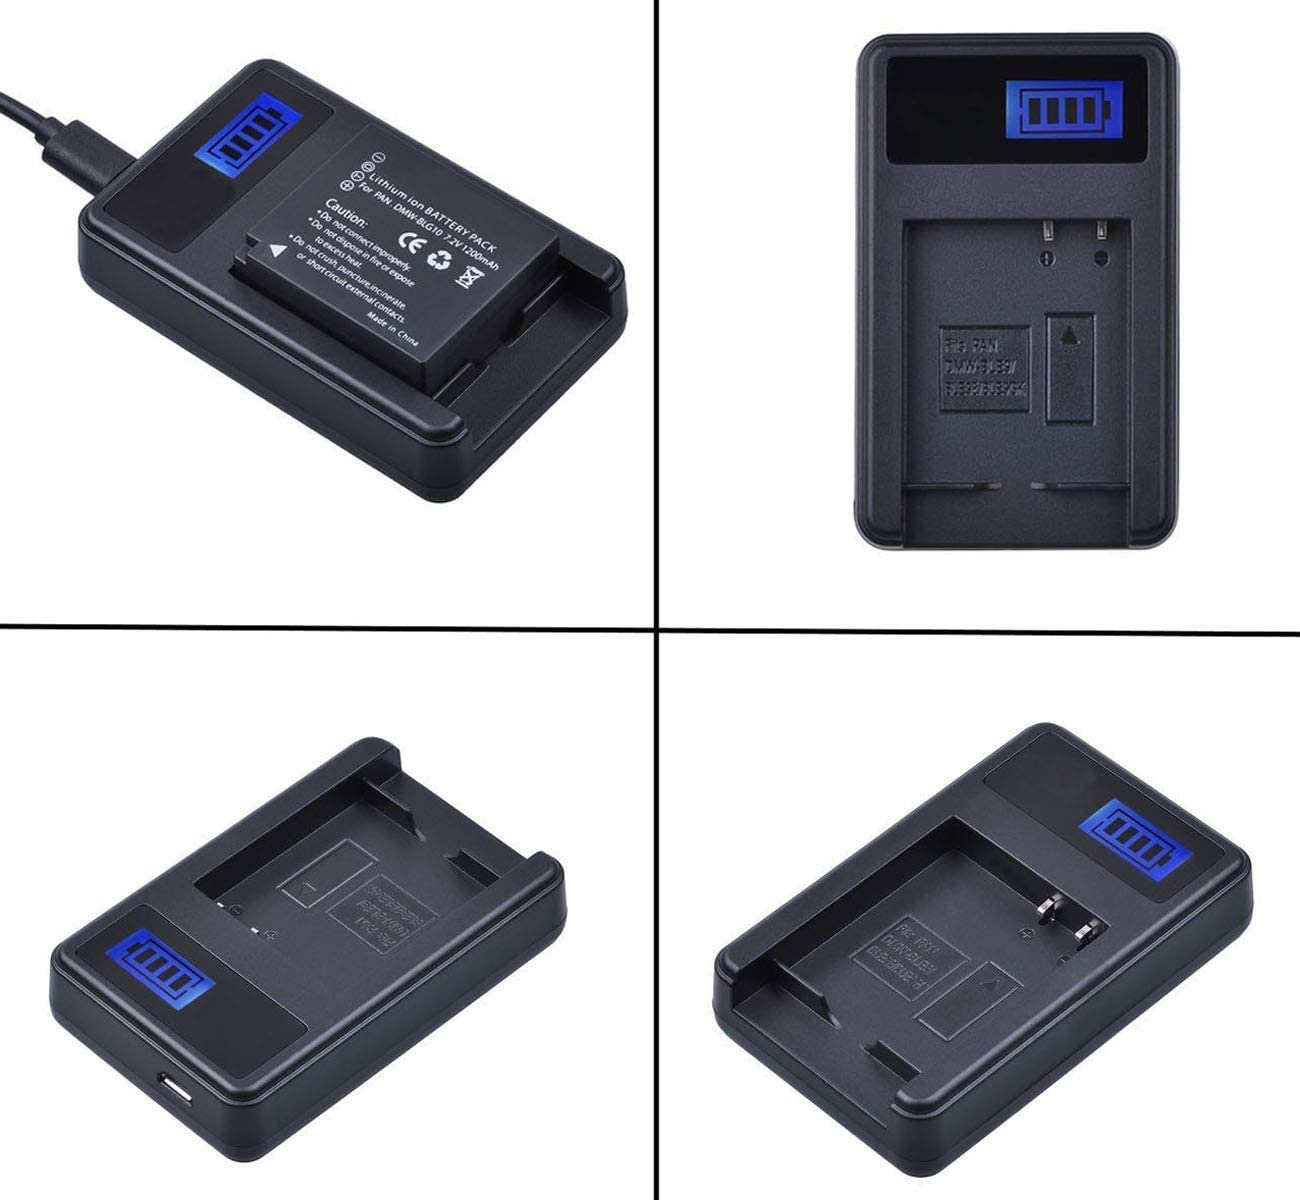 GZ-HD300RUS Camcorder GZ-HD300BUS Battery Charger for JVC Everio GZ-HD300 GZ-HD300RU